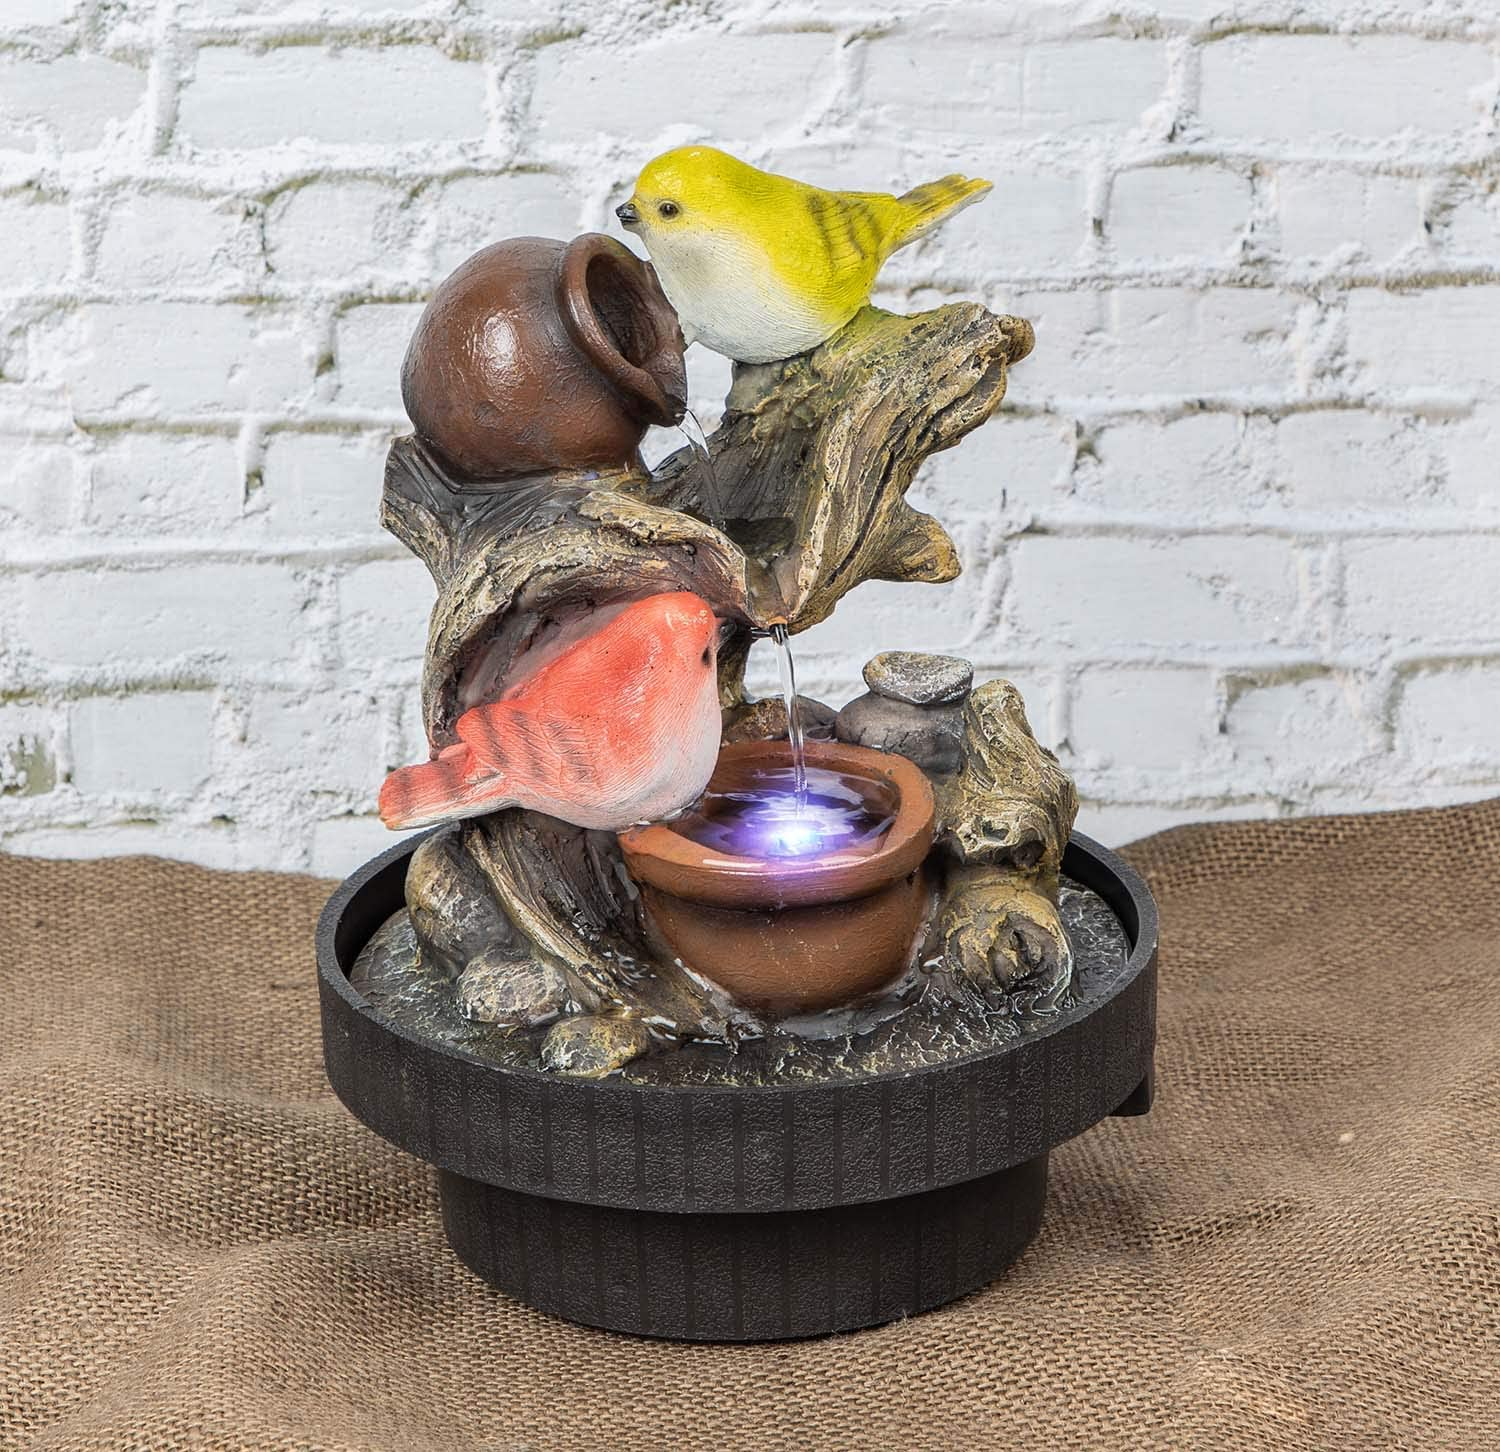 Ferrisland Tabletop Fountain Birds Waterfall Desktop Electric Water Fountain Decor w/LED - Indoor Outdoor Portable Tabletop Decorative Zen Meditation Waterfall Kit Includes Submersible Pump: Home Improvement